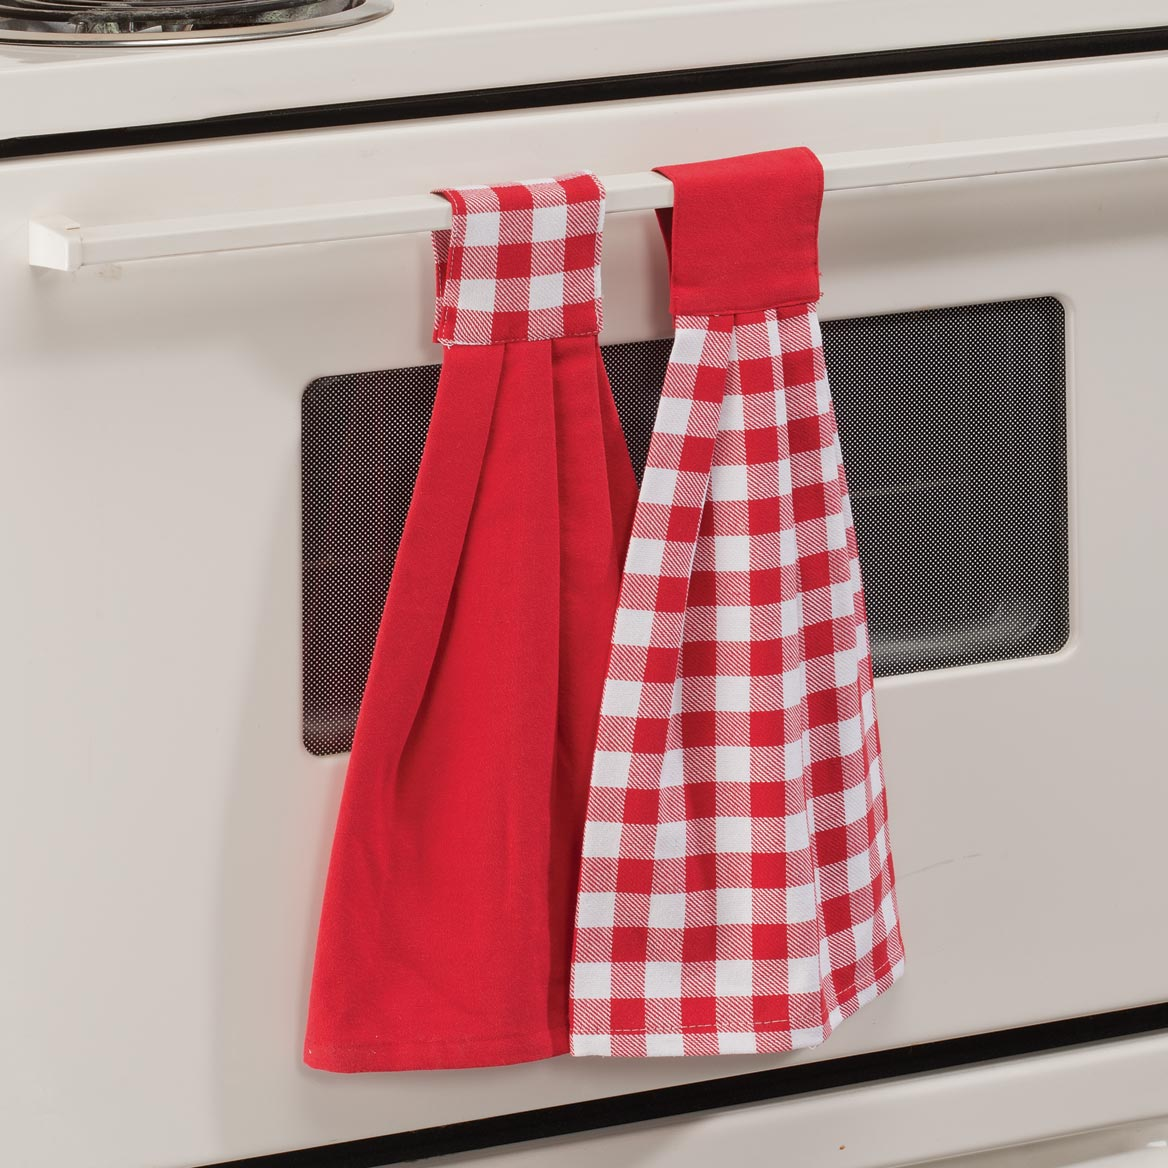 Buffalo Check Tie Towels, Set of 2-359883